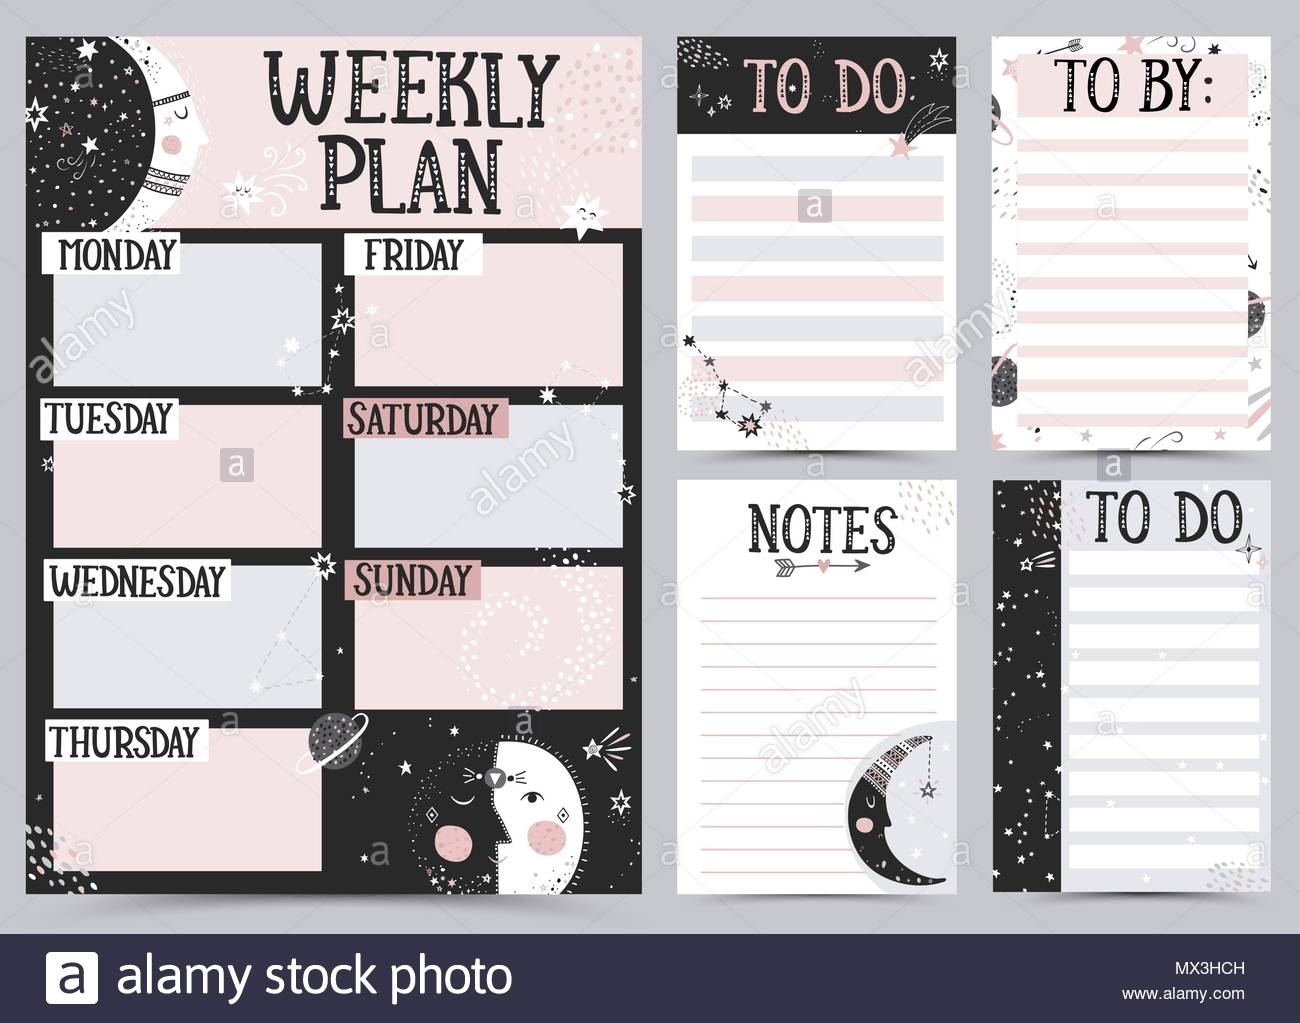 Schedule Er Template Excel Calendar Bill Monthly | Smorad regarding Blank Weekly Bill Organizer Printable